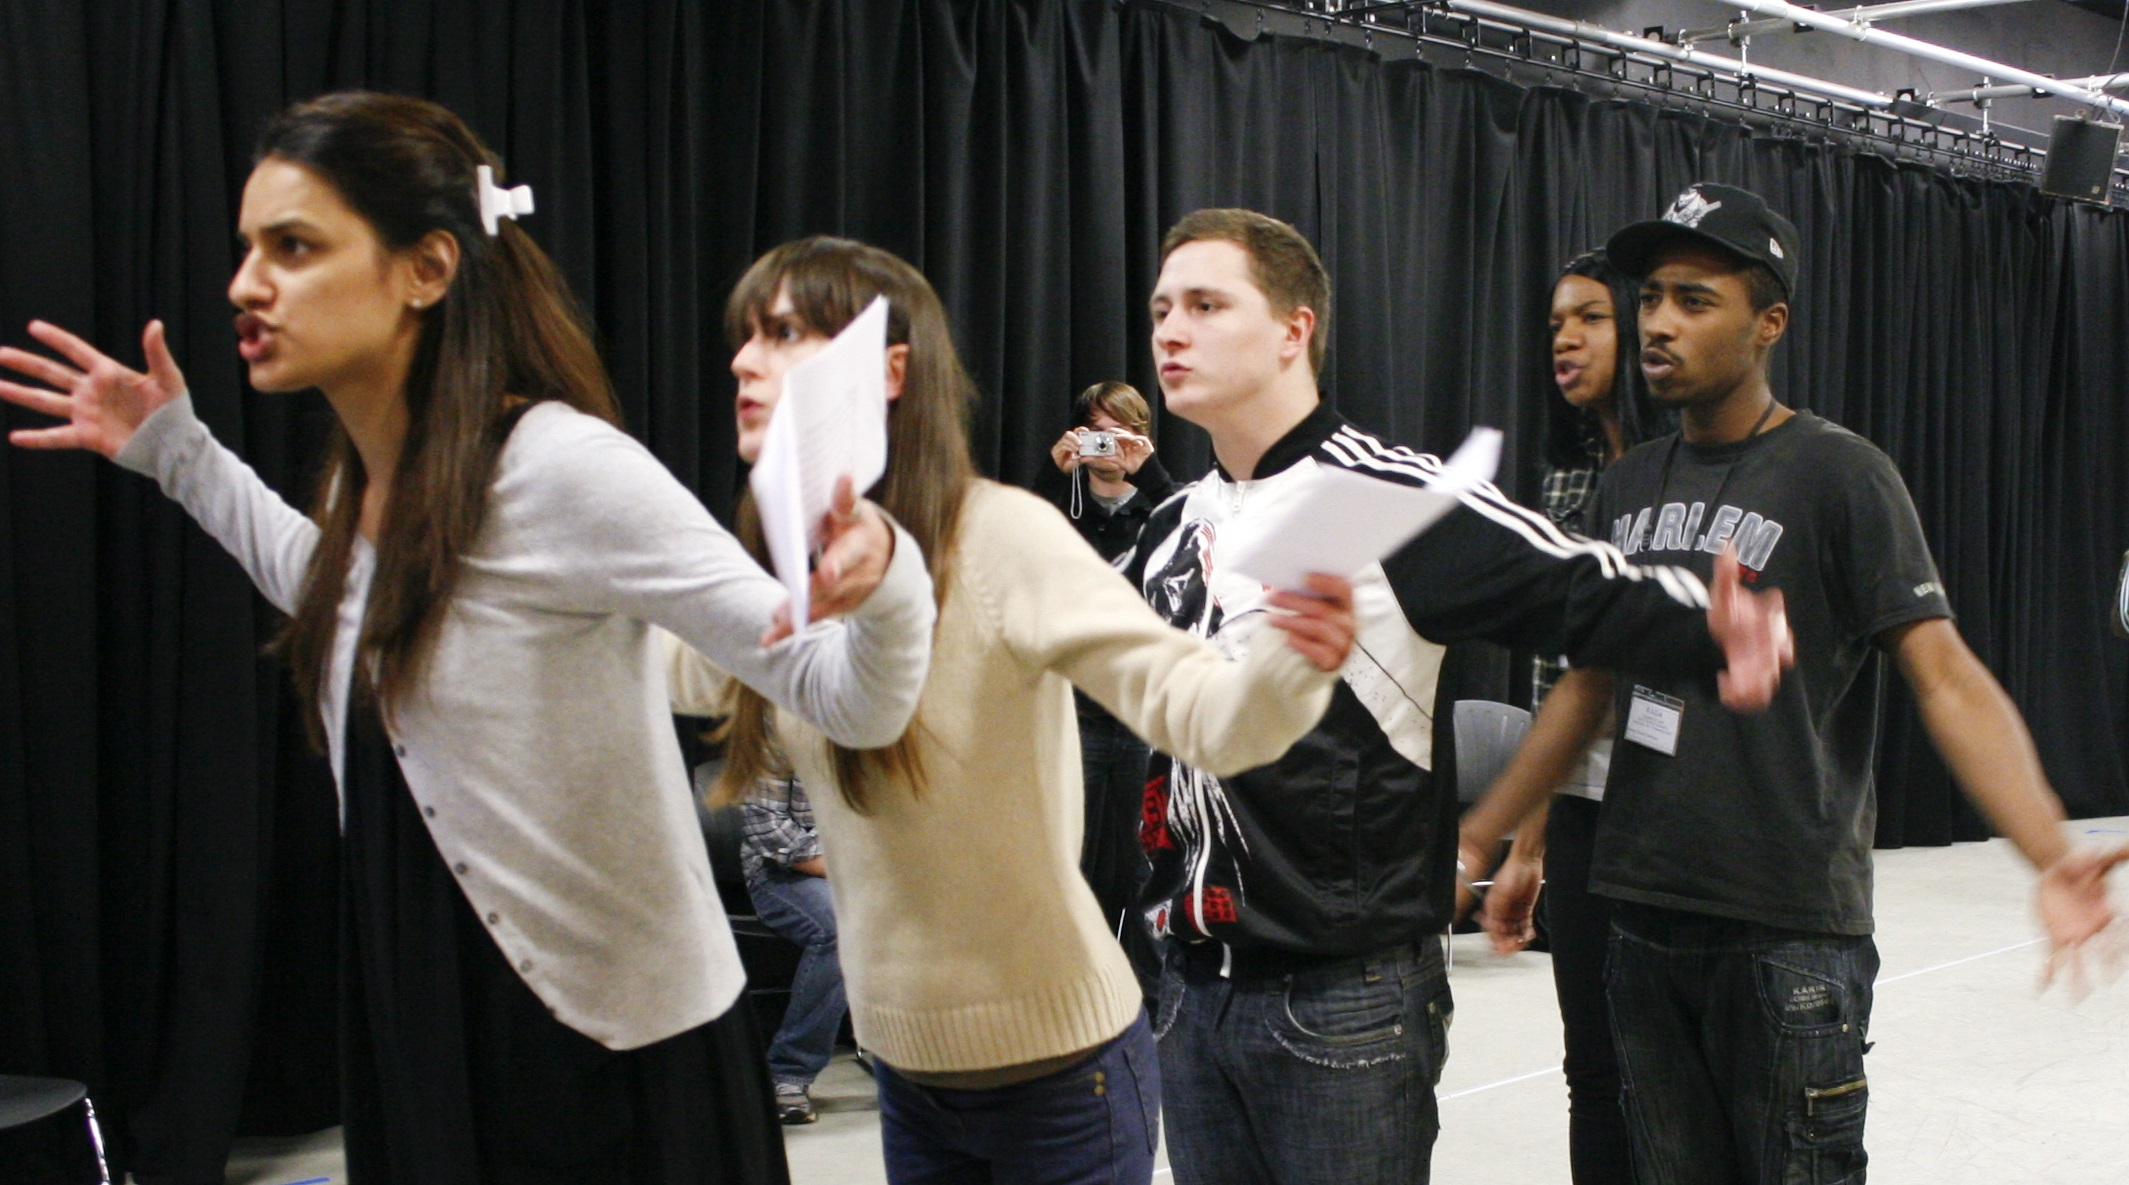 Five young people stand in a line rehearsing a phrase